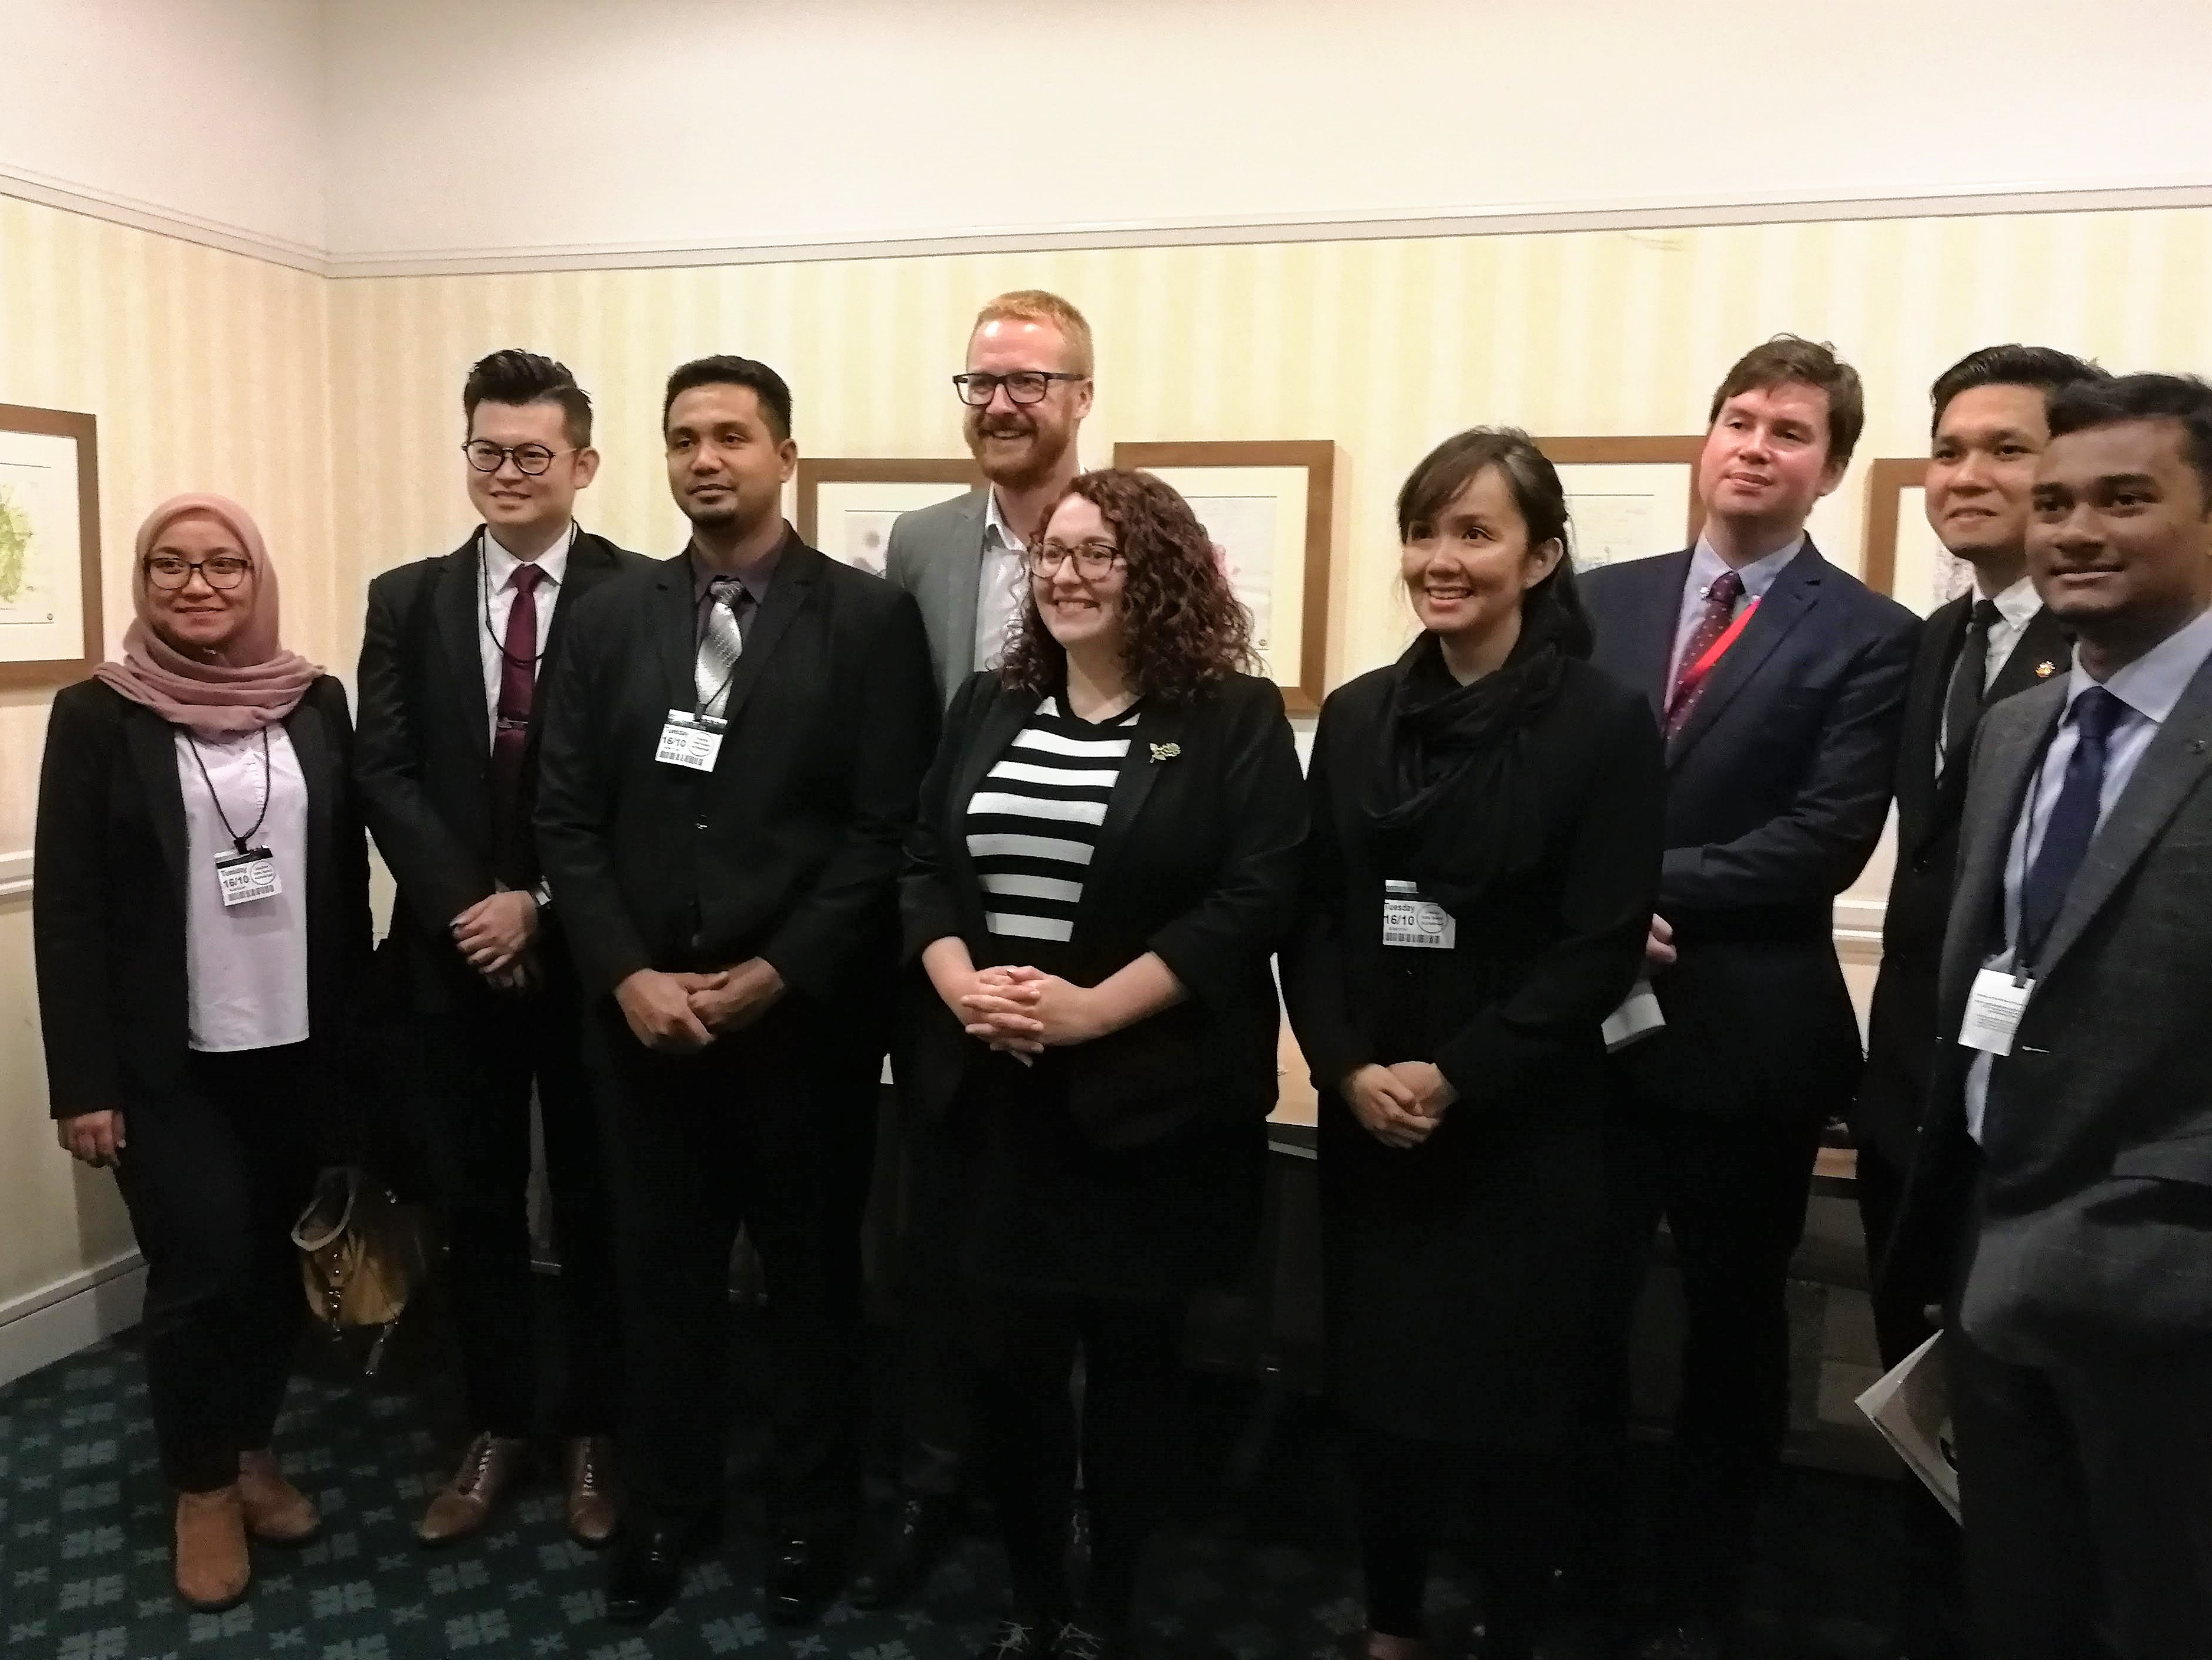 Lloyd Russell-Moyle MP, Danielle Rowley MP, Dan Carden MP with the delegation following a roundtable discussion